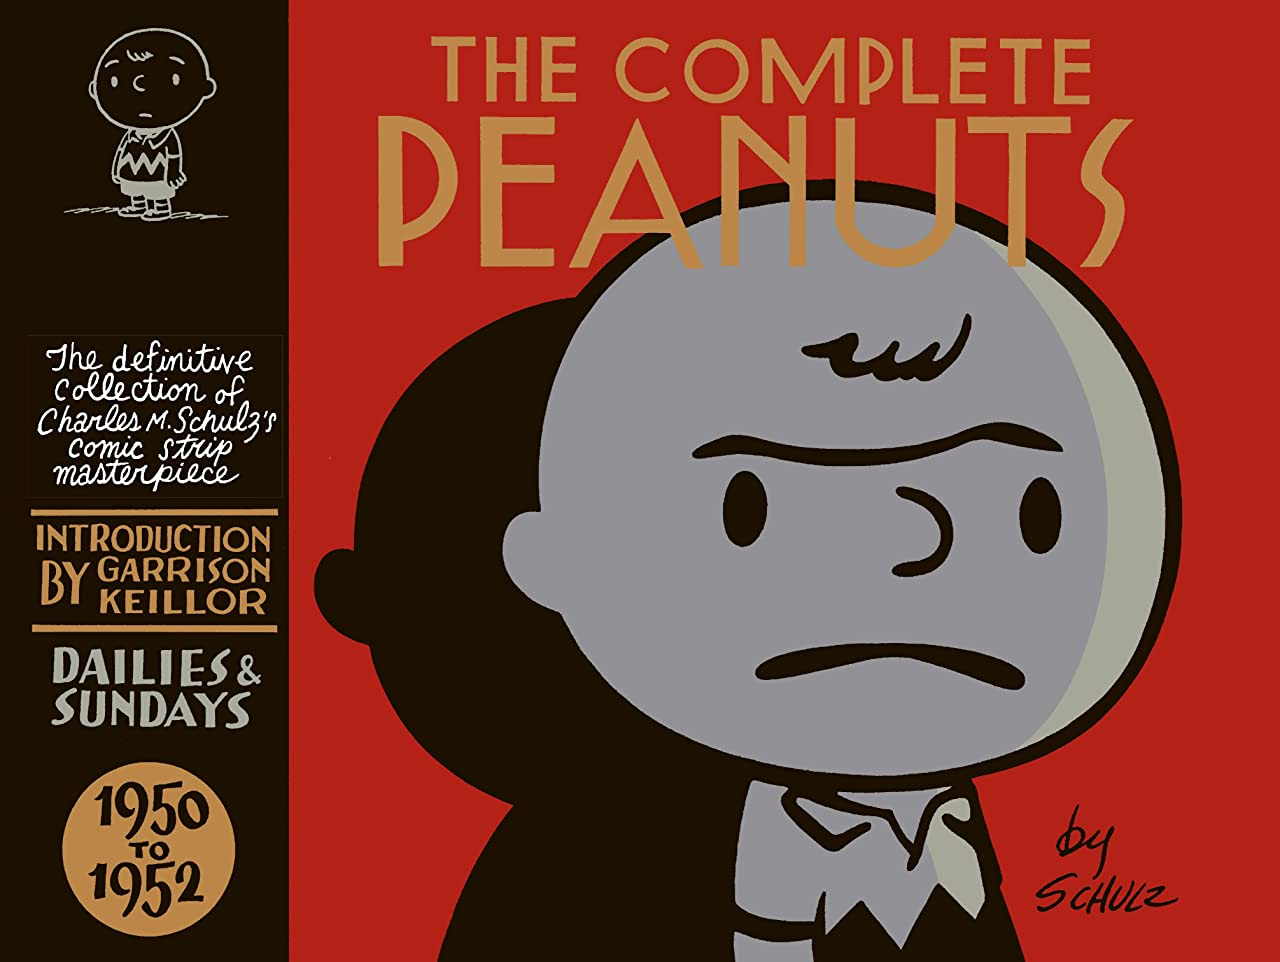 The Complete Peanuts Vol. 1: 1950-1952